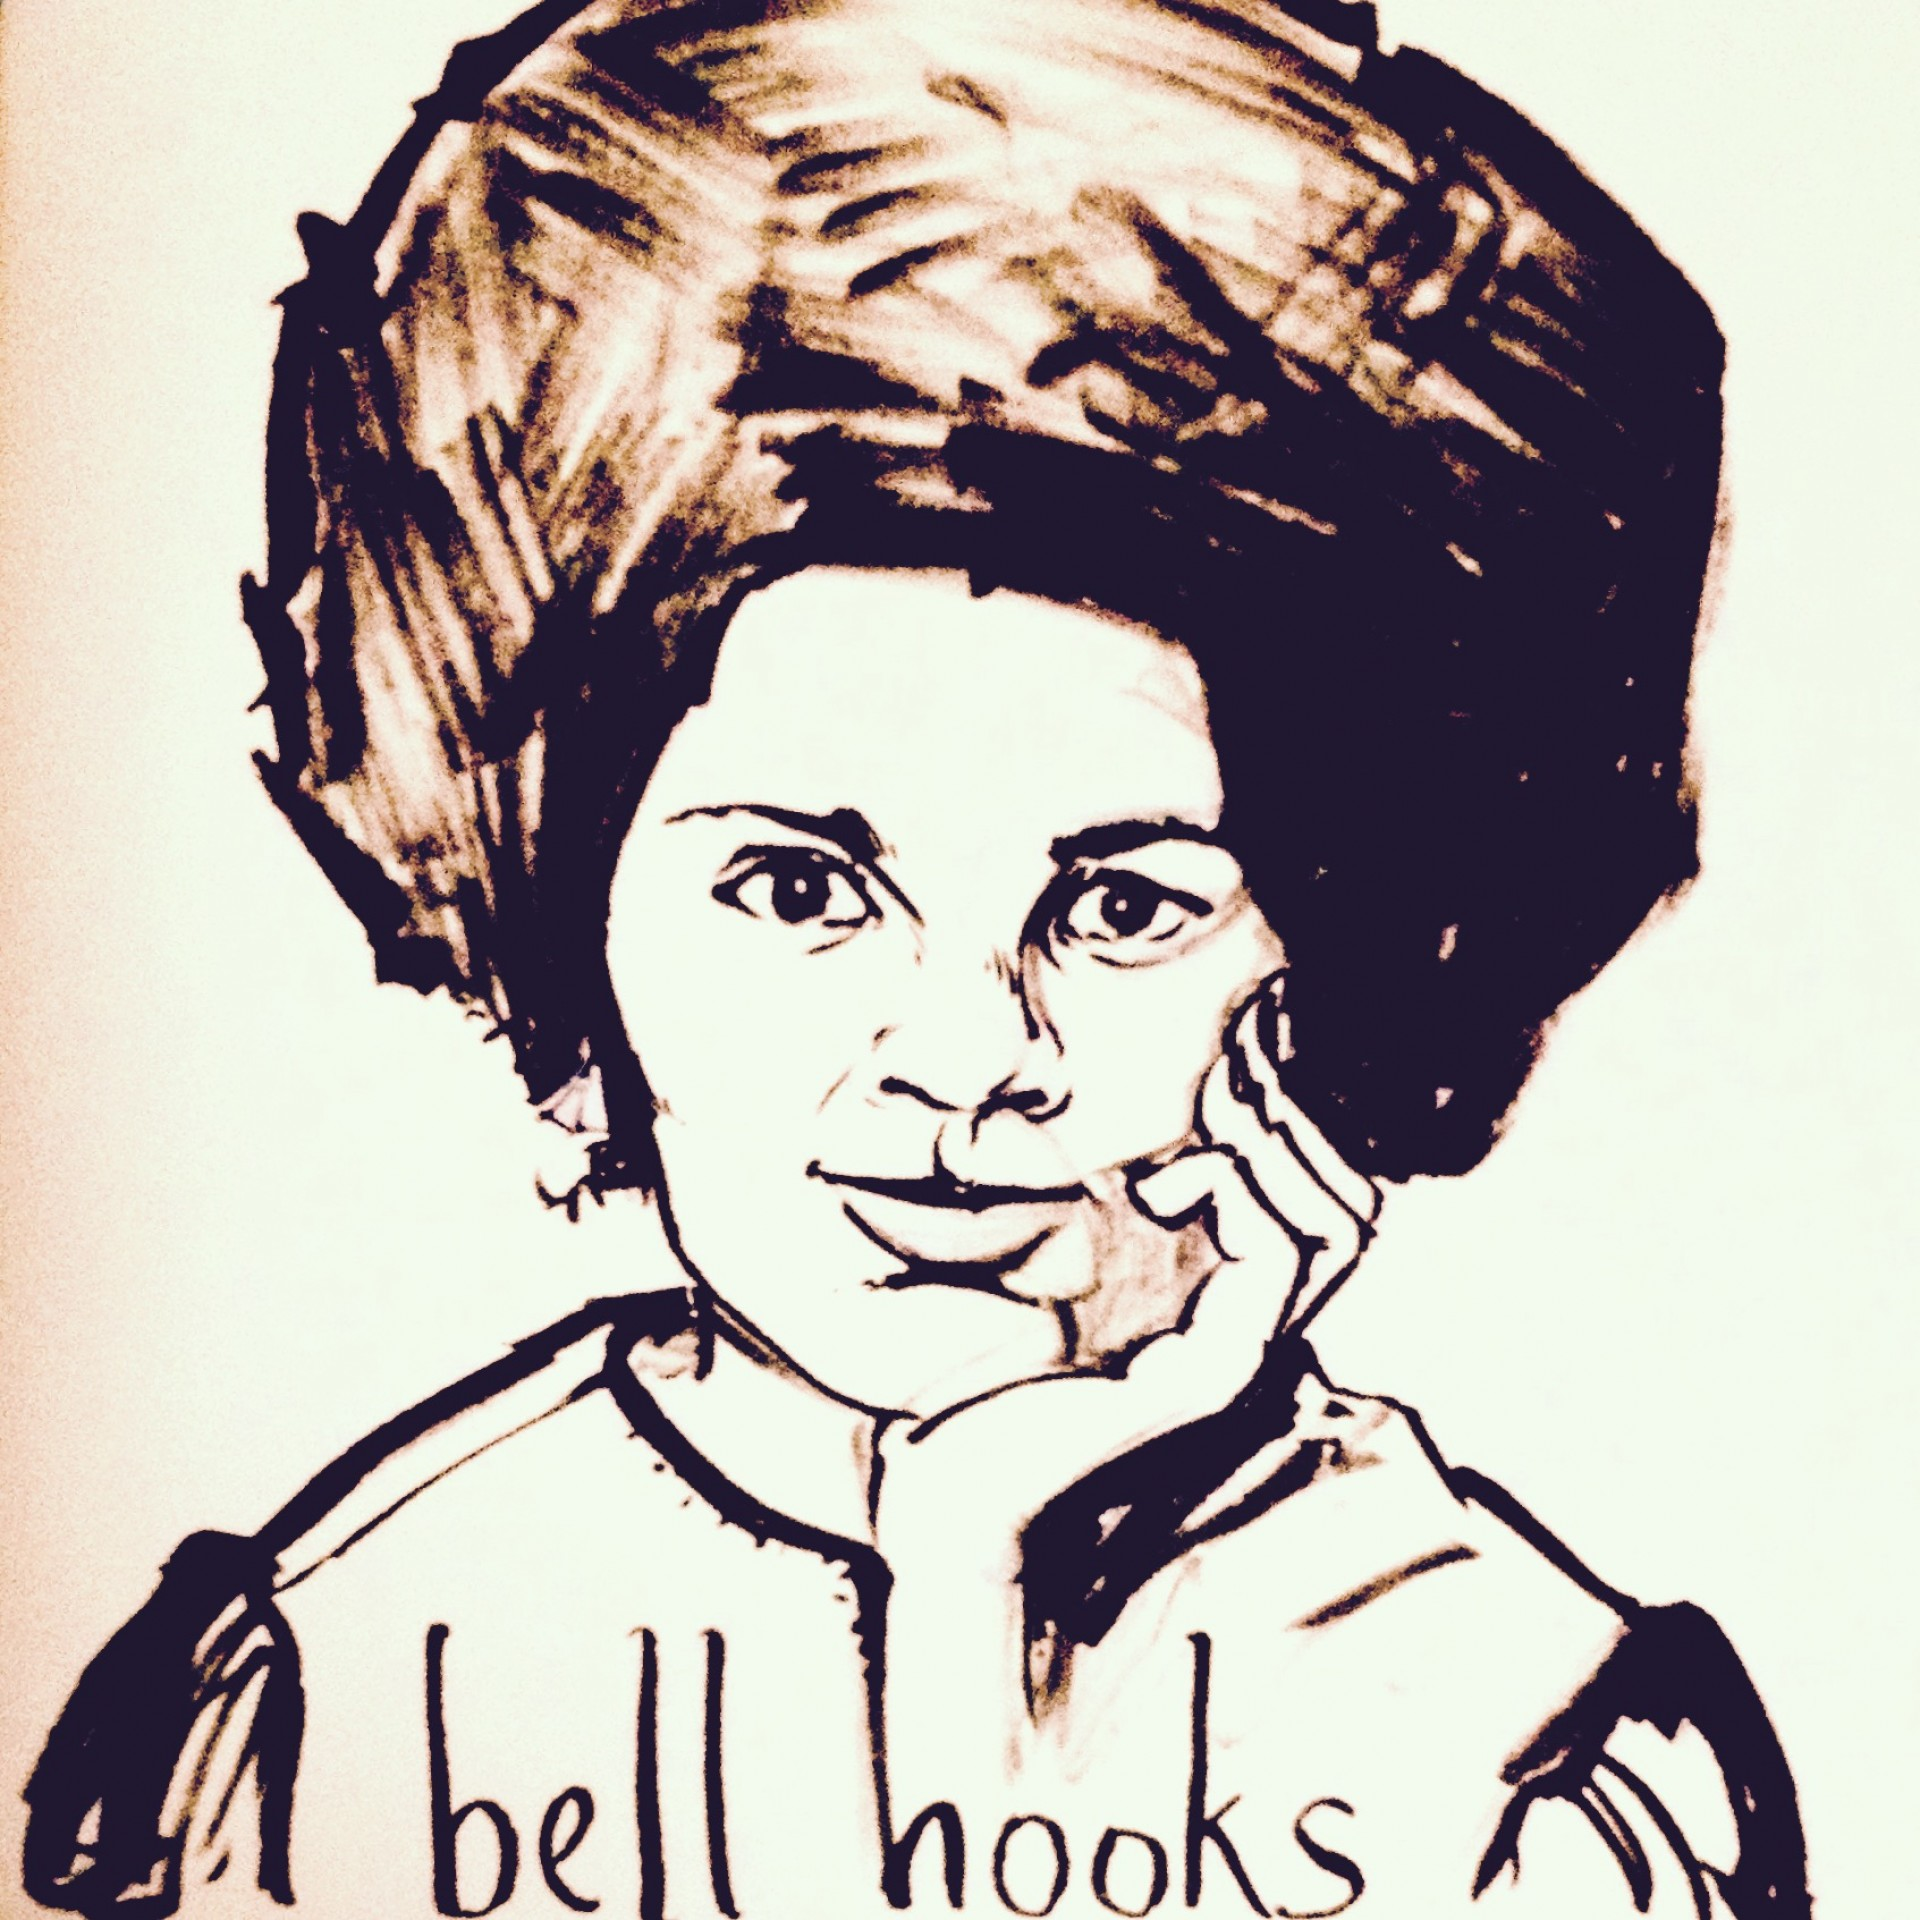 001 Bell Hooks Essays Essay Example Best Feminism Patriarchy 1920